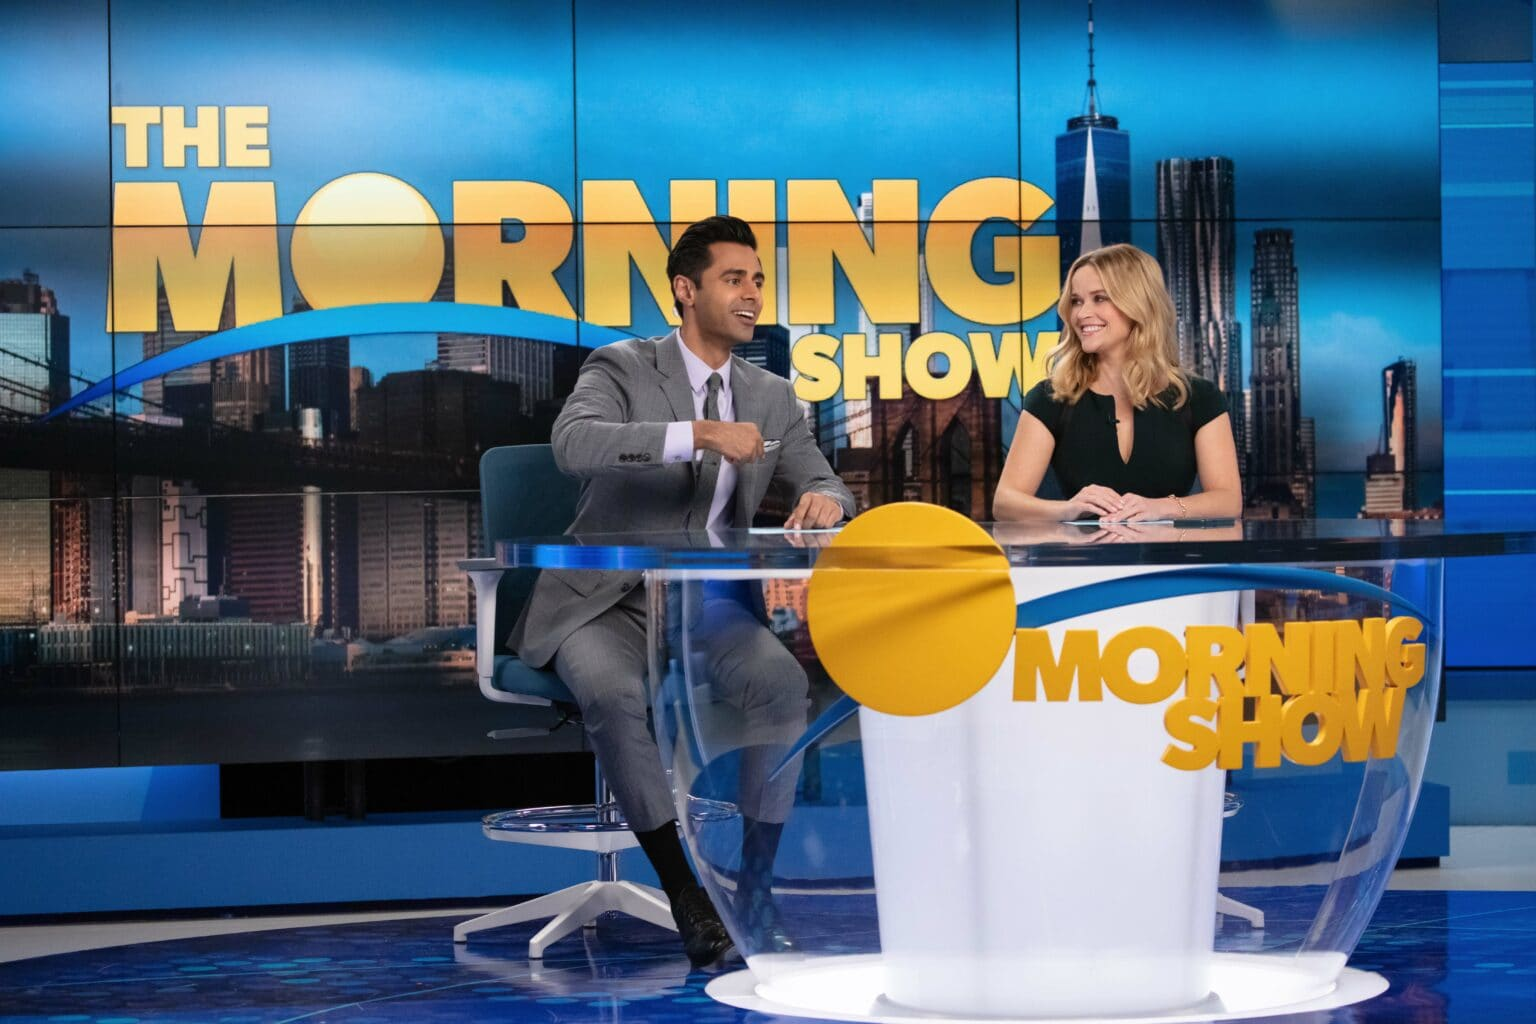 Hasan Minhaj and Reese Witherspoon returns to The Morning Show